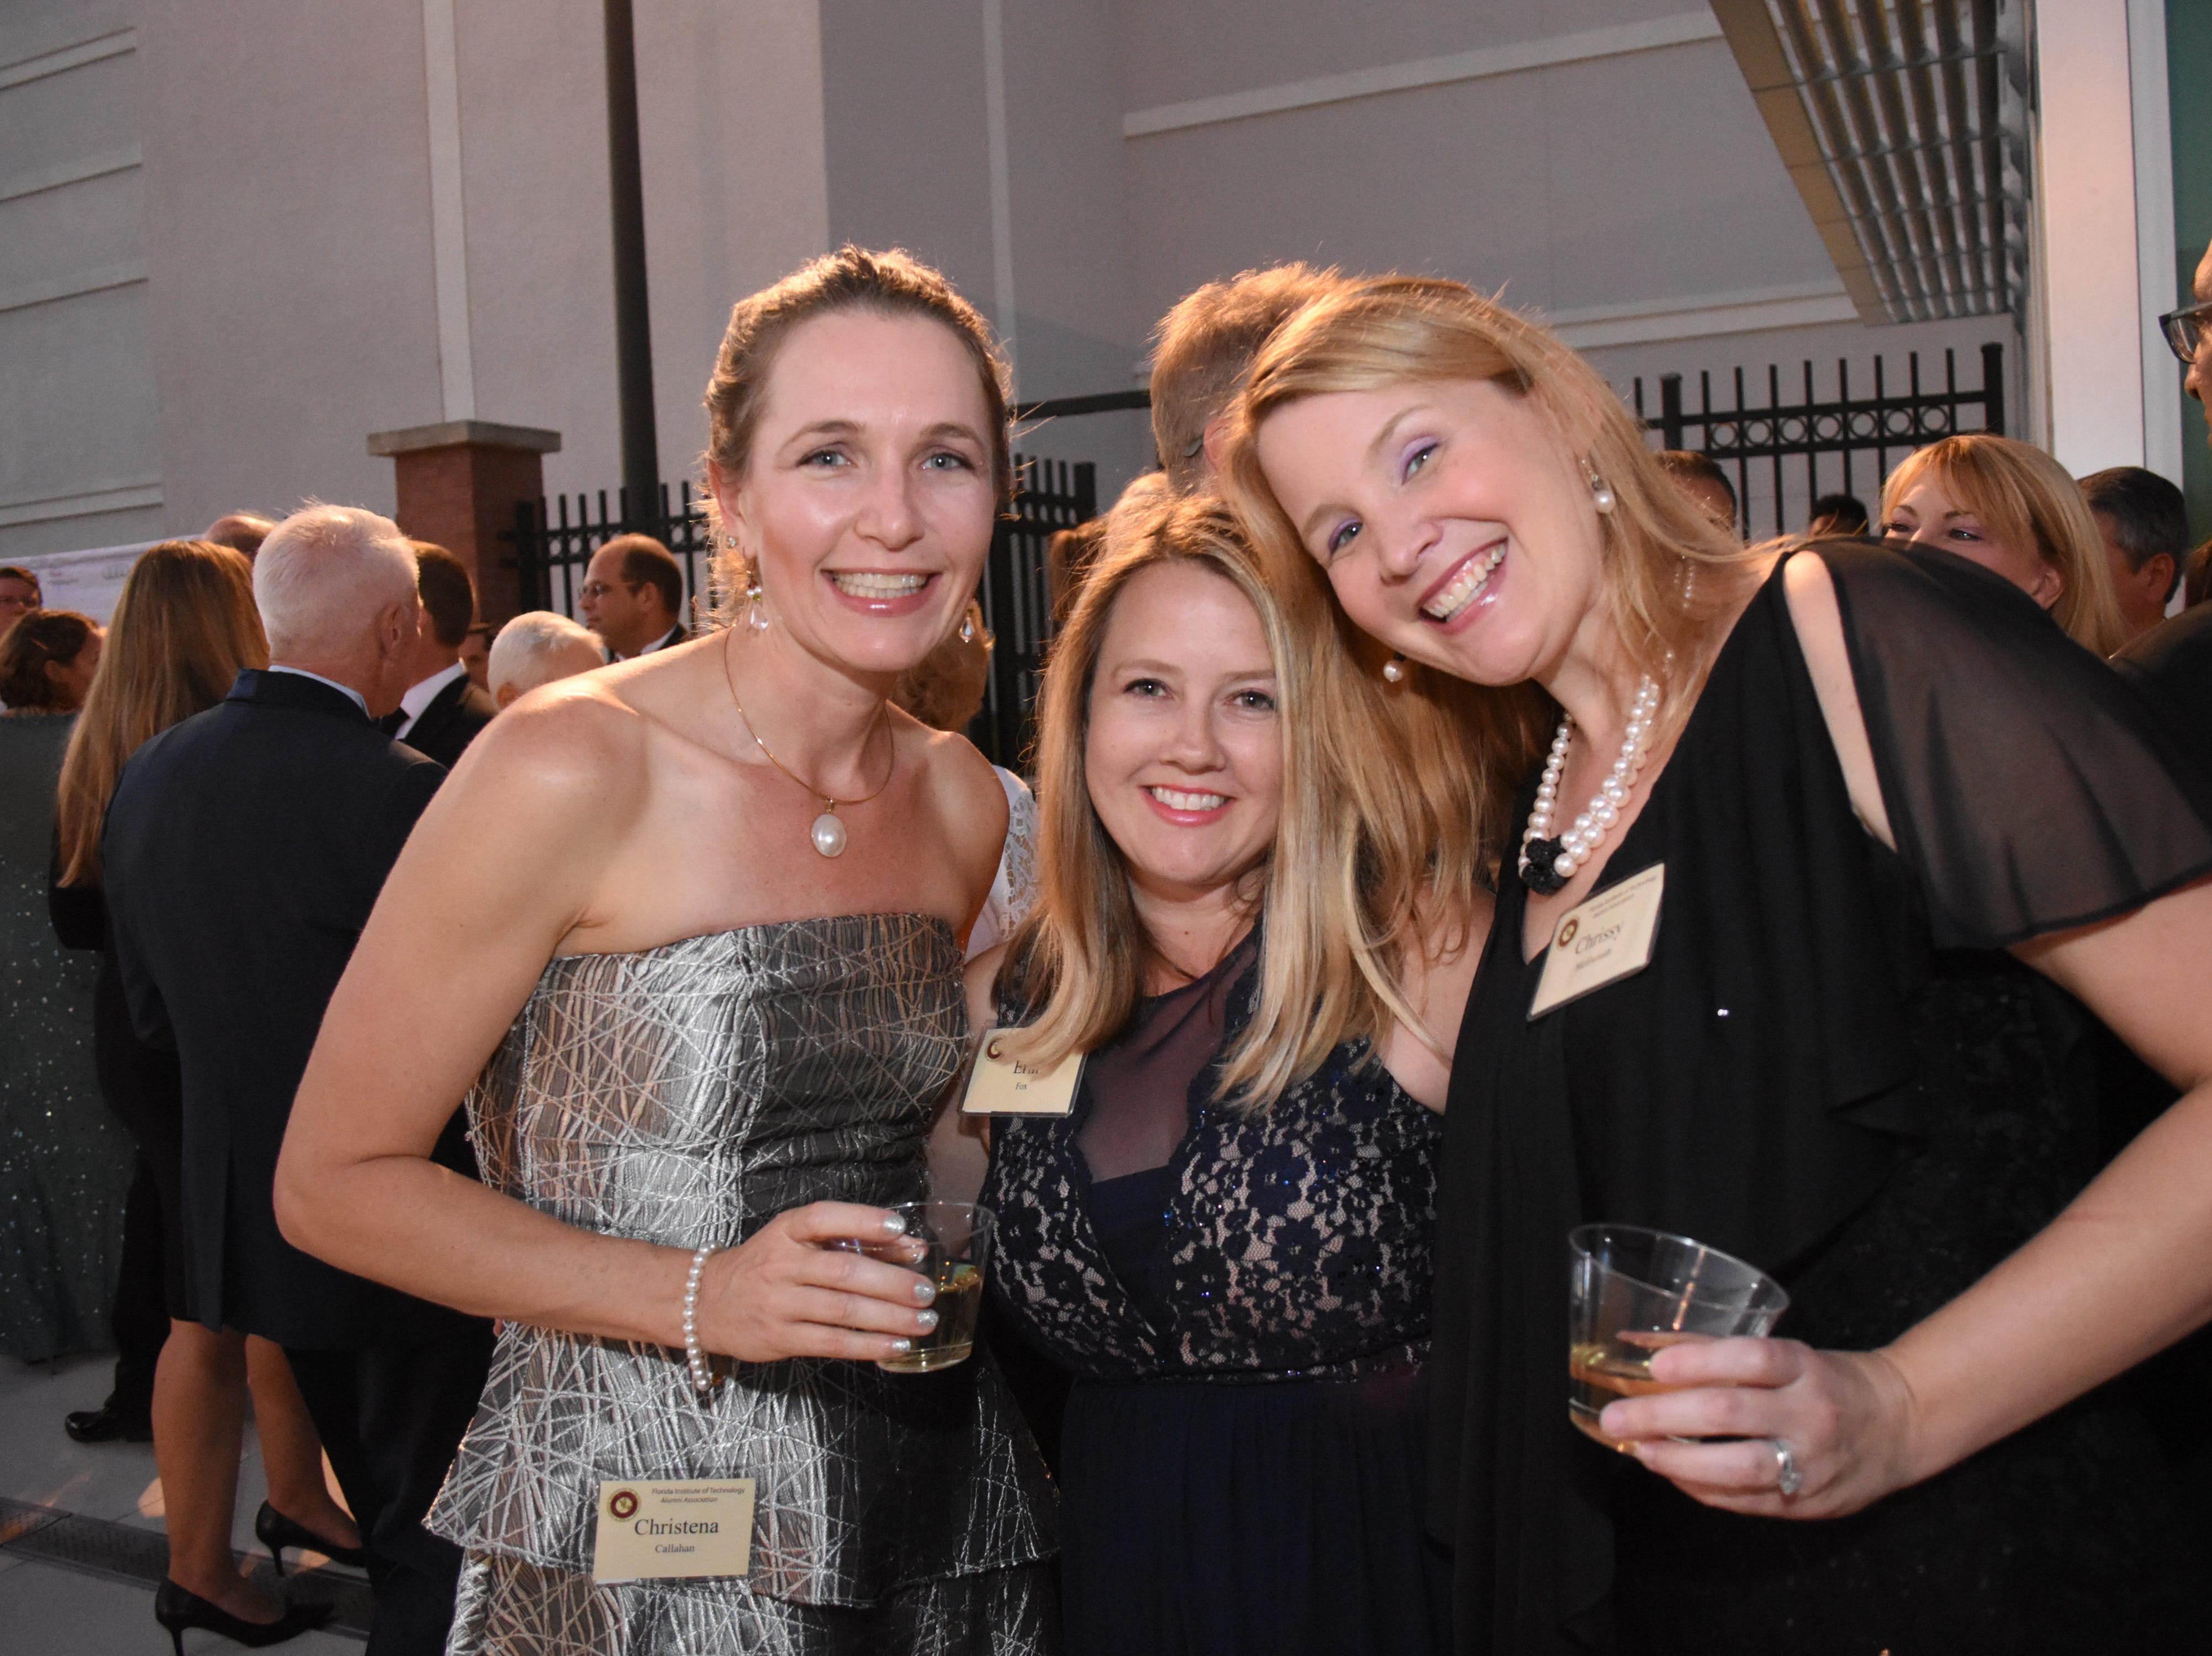 Christena Callahan, Erin Fox and Chrissy McIlwraith at Florida Tech's 60th Anniversary Homecoming Gala Oct. 13, 2018, at the Clemente Center.